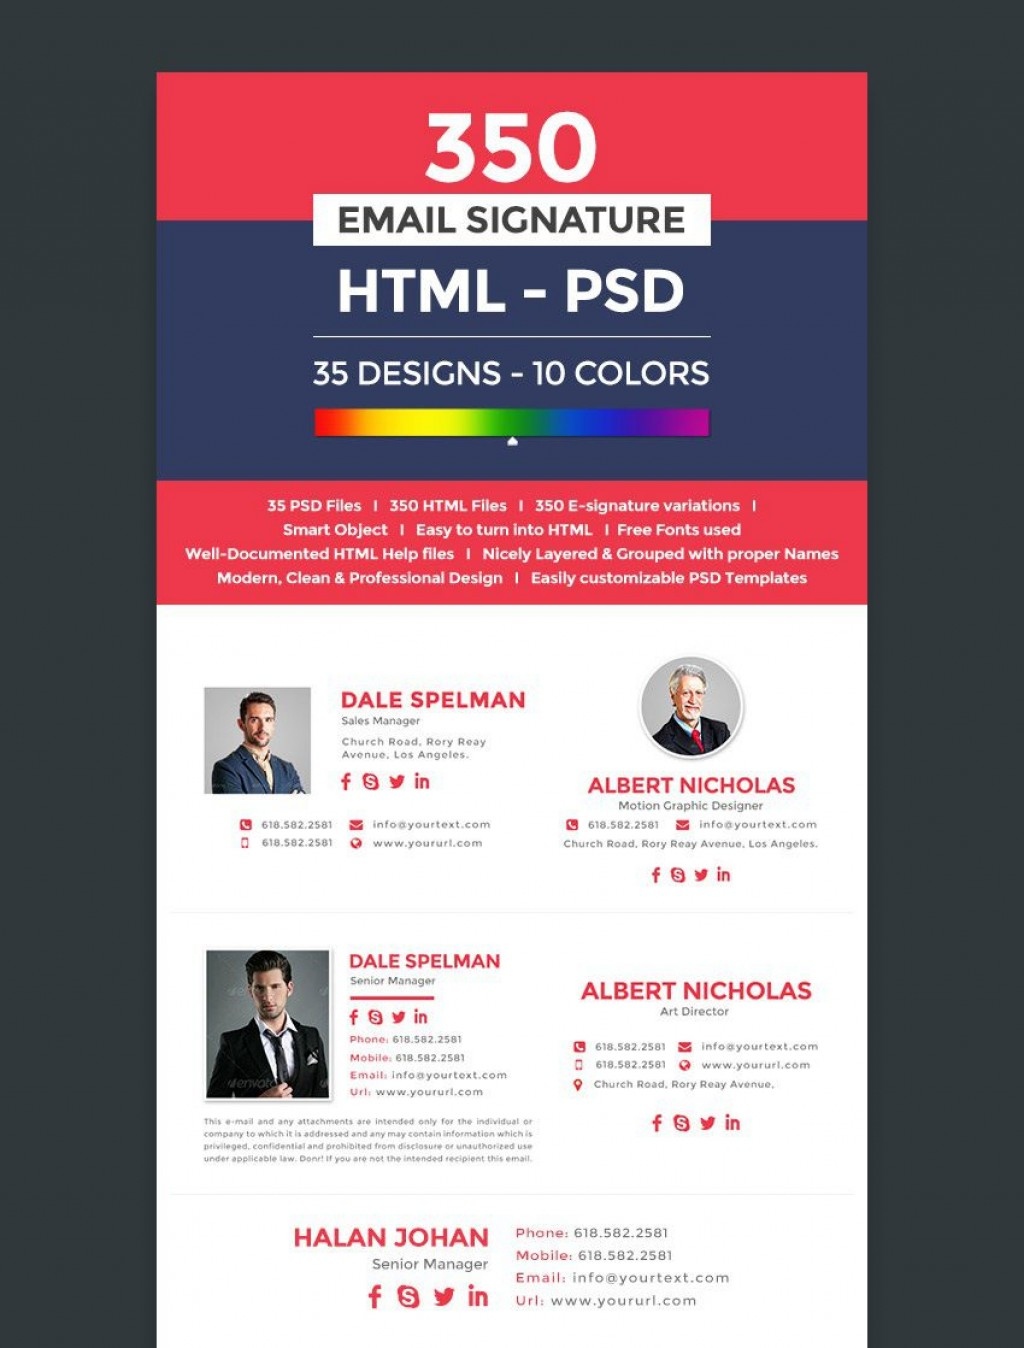 003 Top Professional Email Signature Template High Def  Download Free HtmlLarge